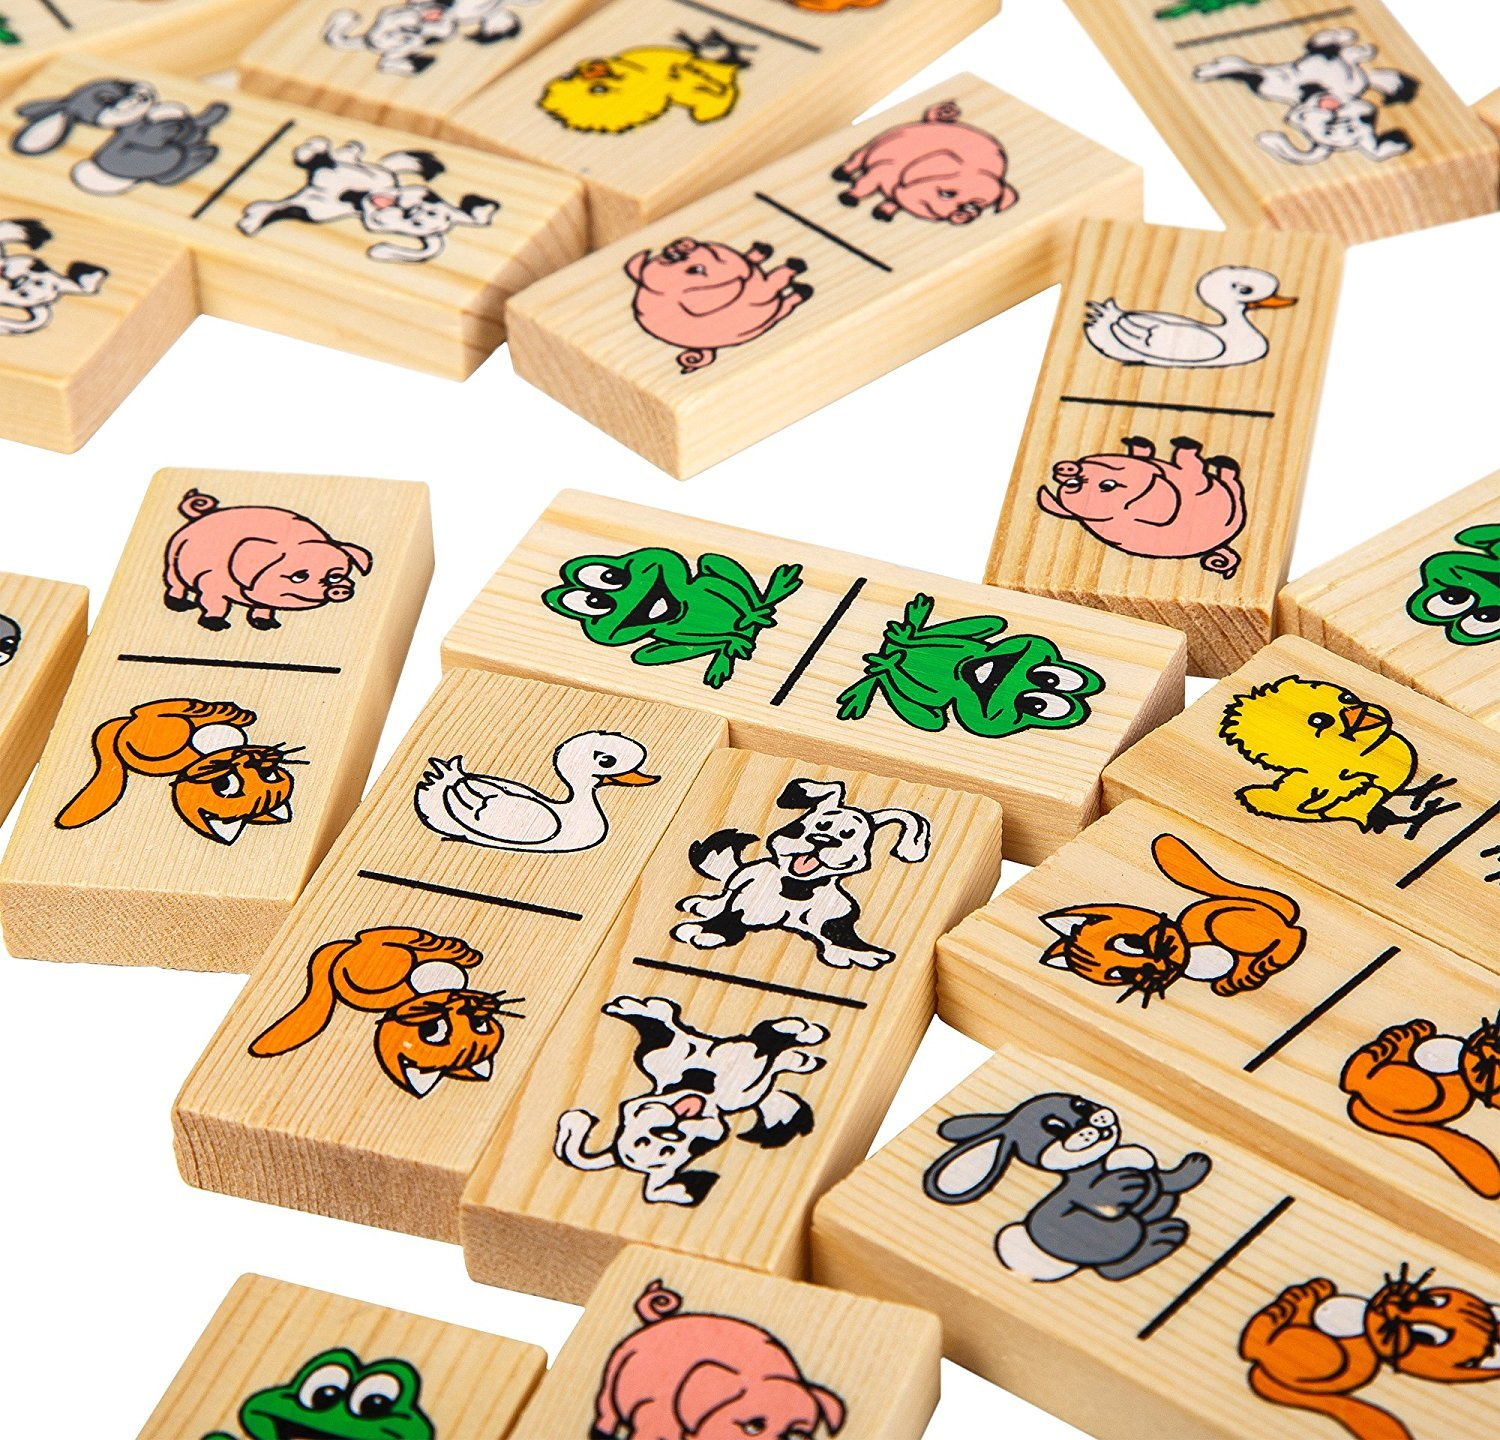 【超歓迎された】 ドミノfor Kids – Funny Funny Animals B072FRFDXZ – Wooden Fancy – Dominoes B072FRFDXZ, ソシエ e-Shop:a10b575b --- efichas.com.br